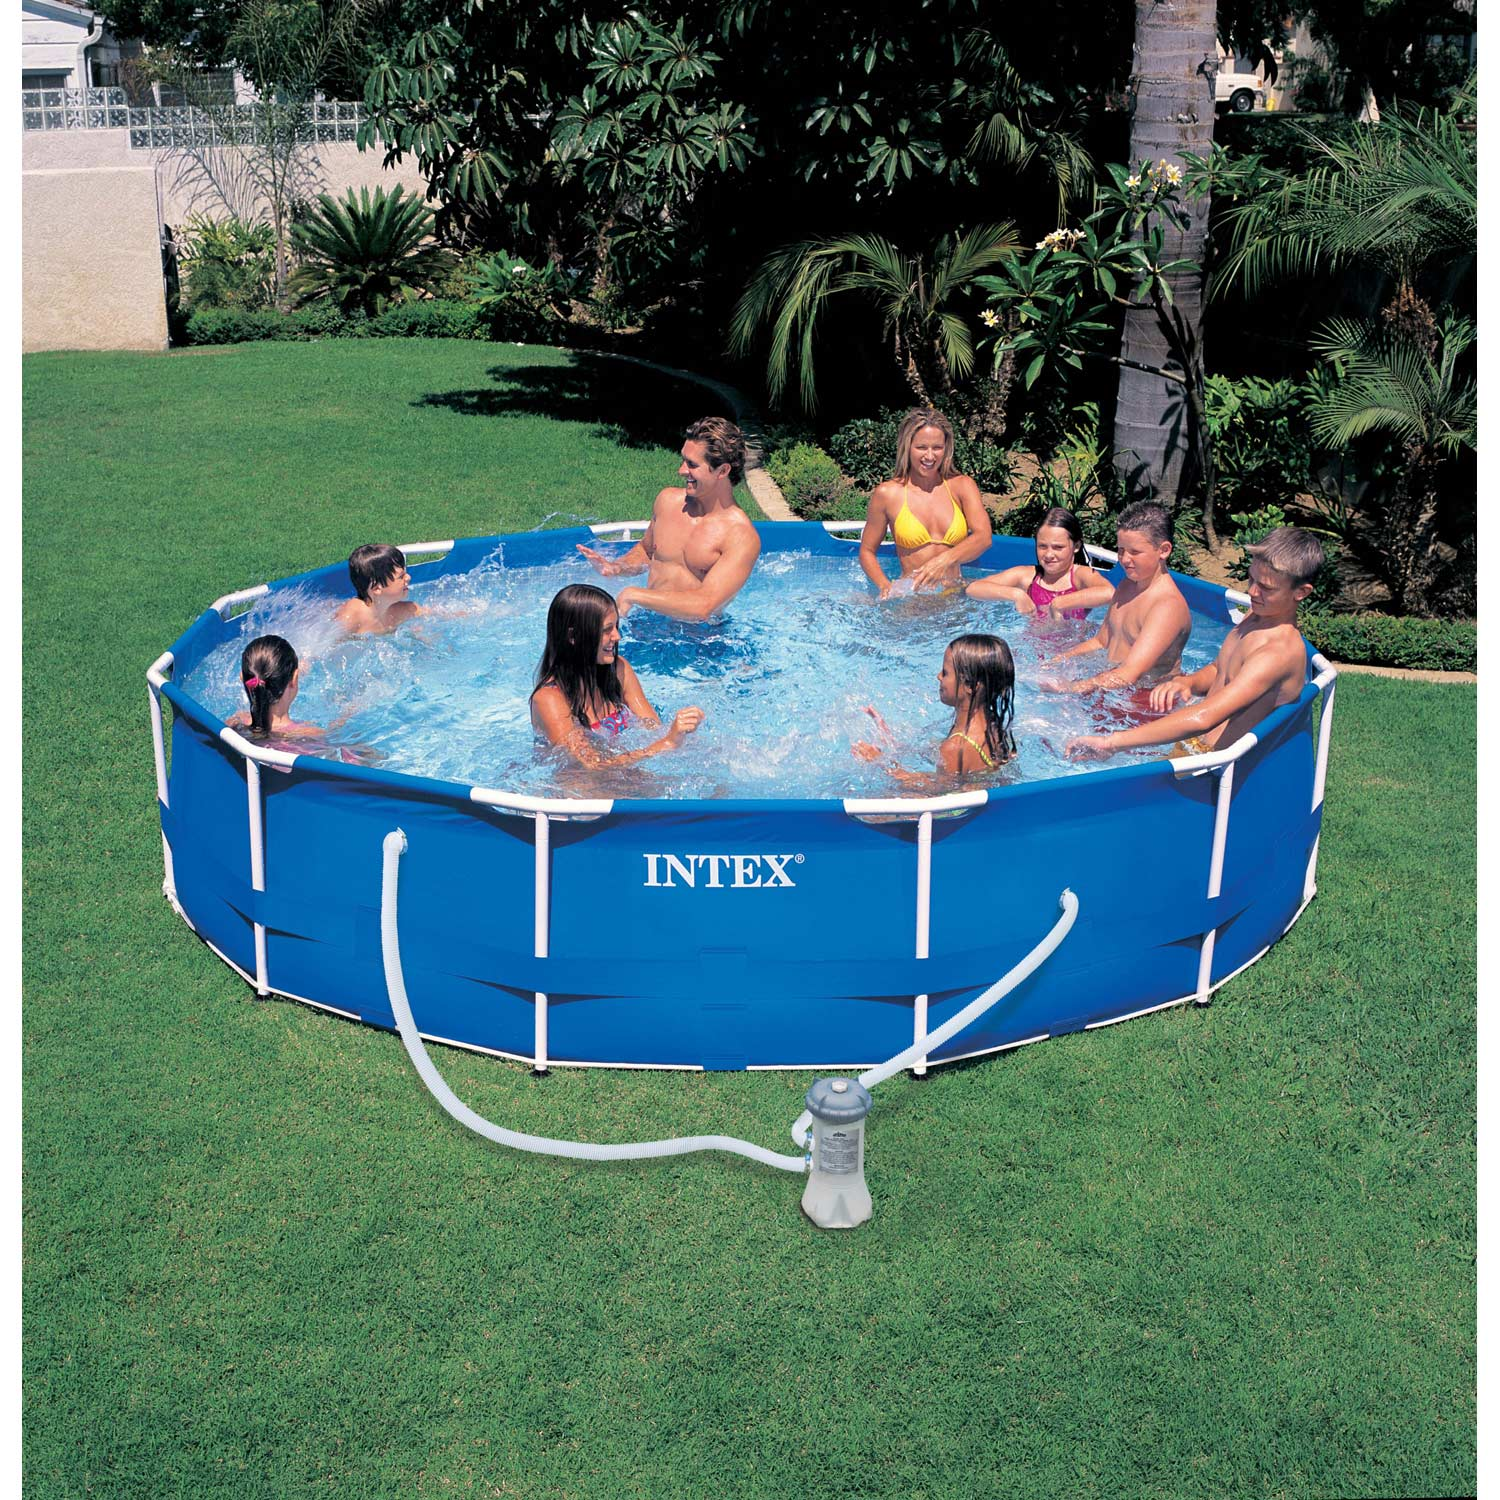 Piscine hors sol autoportante tubulaire metal frame intex for Piscine hors sol teck